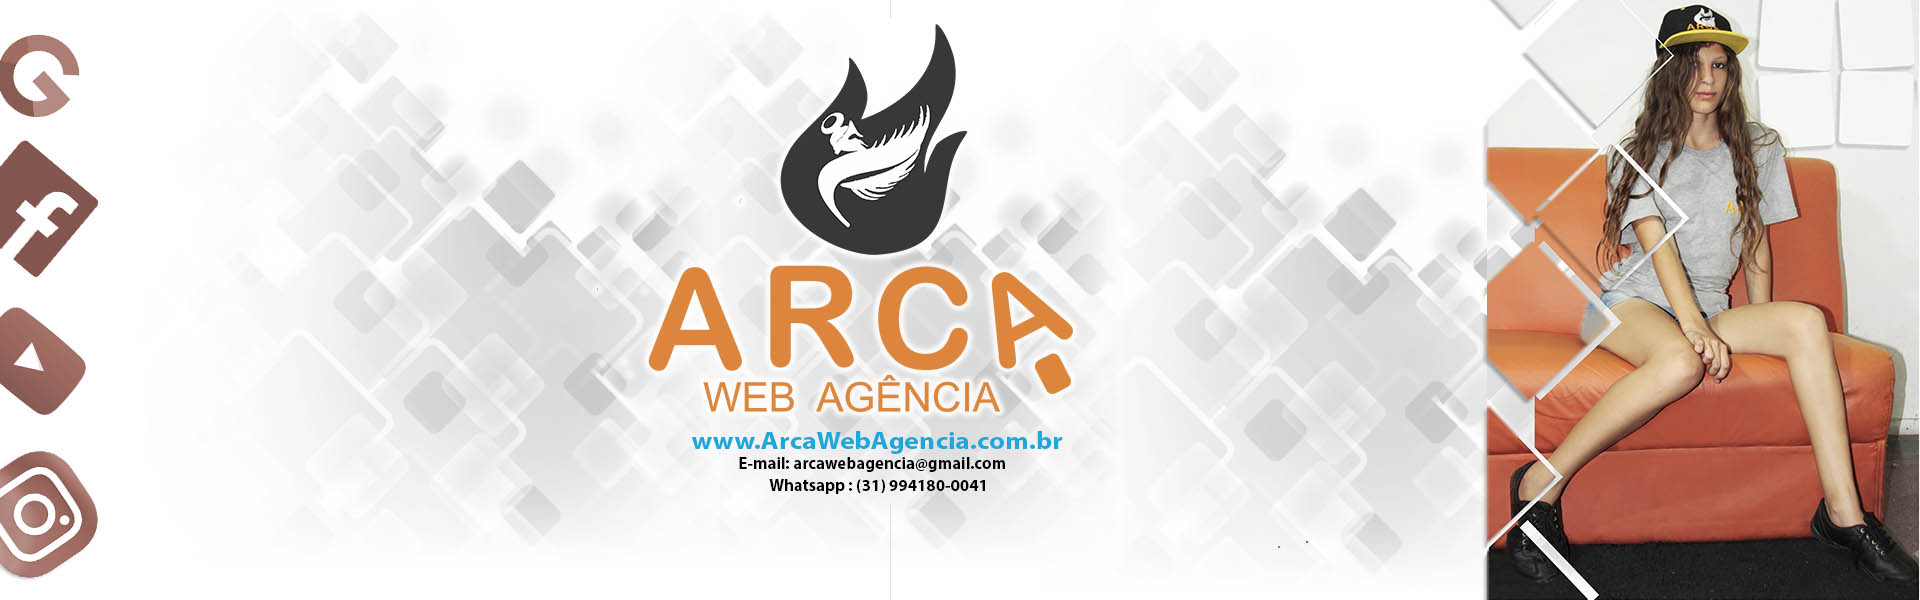 SITES DE ALTO NÍVEL & MARKETING DIGITAL